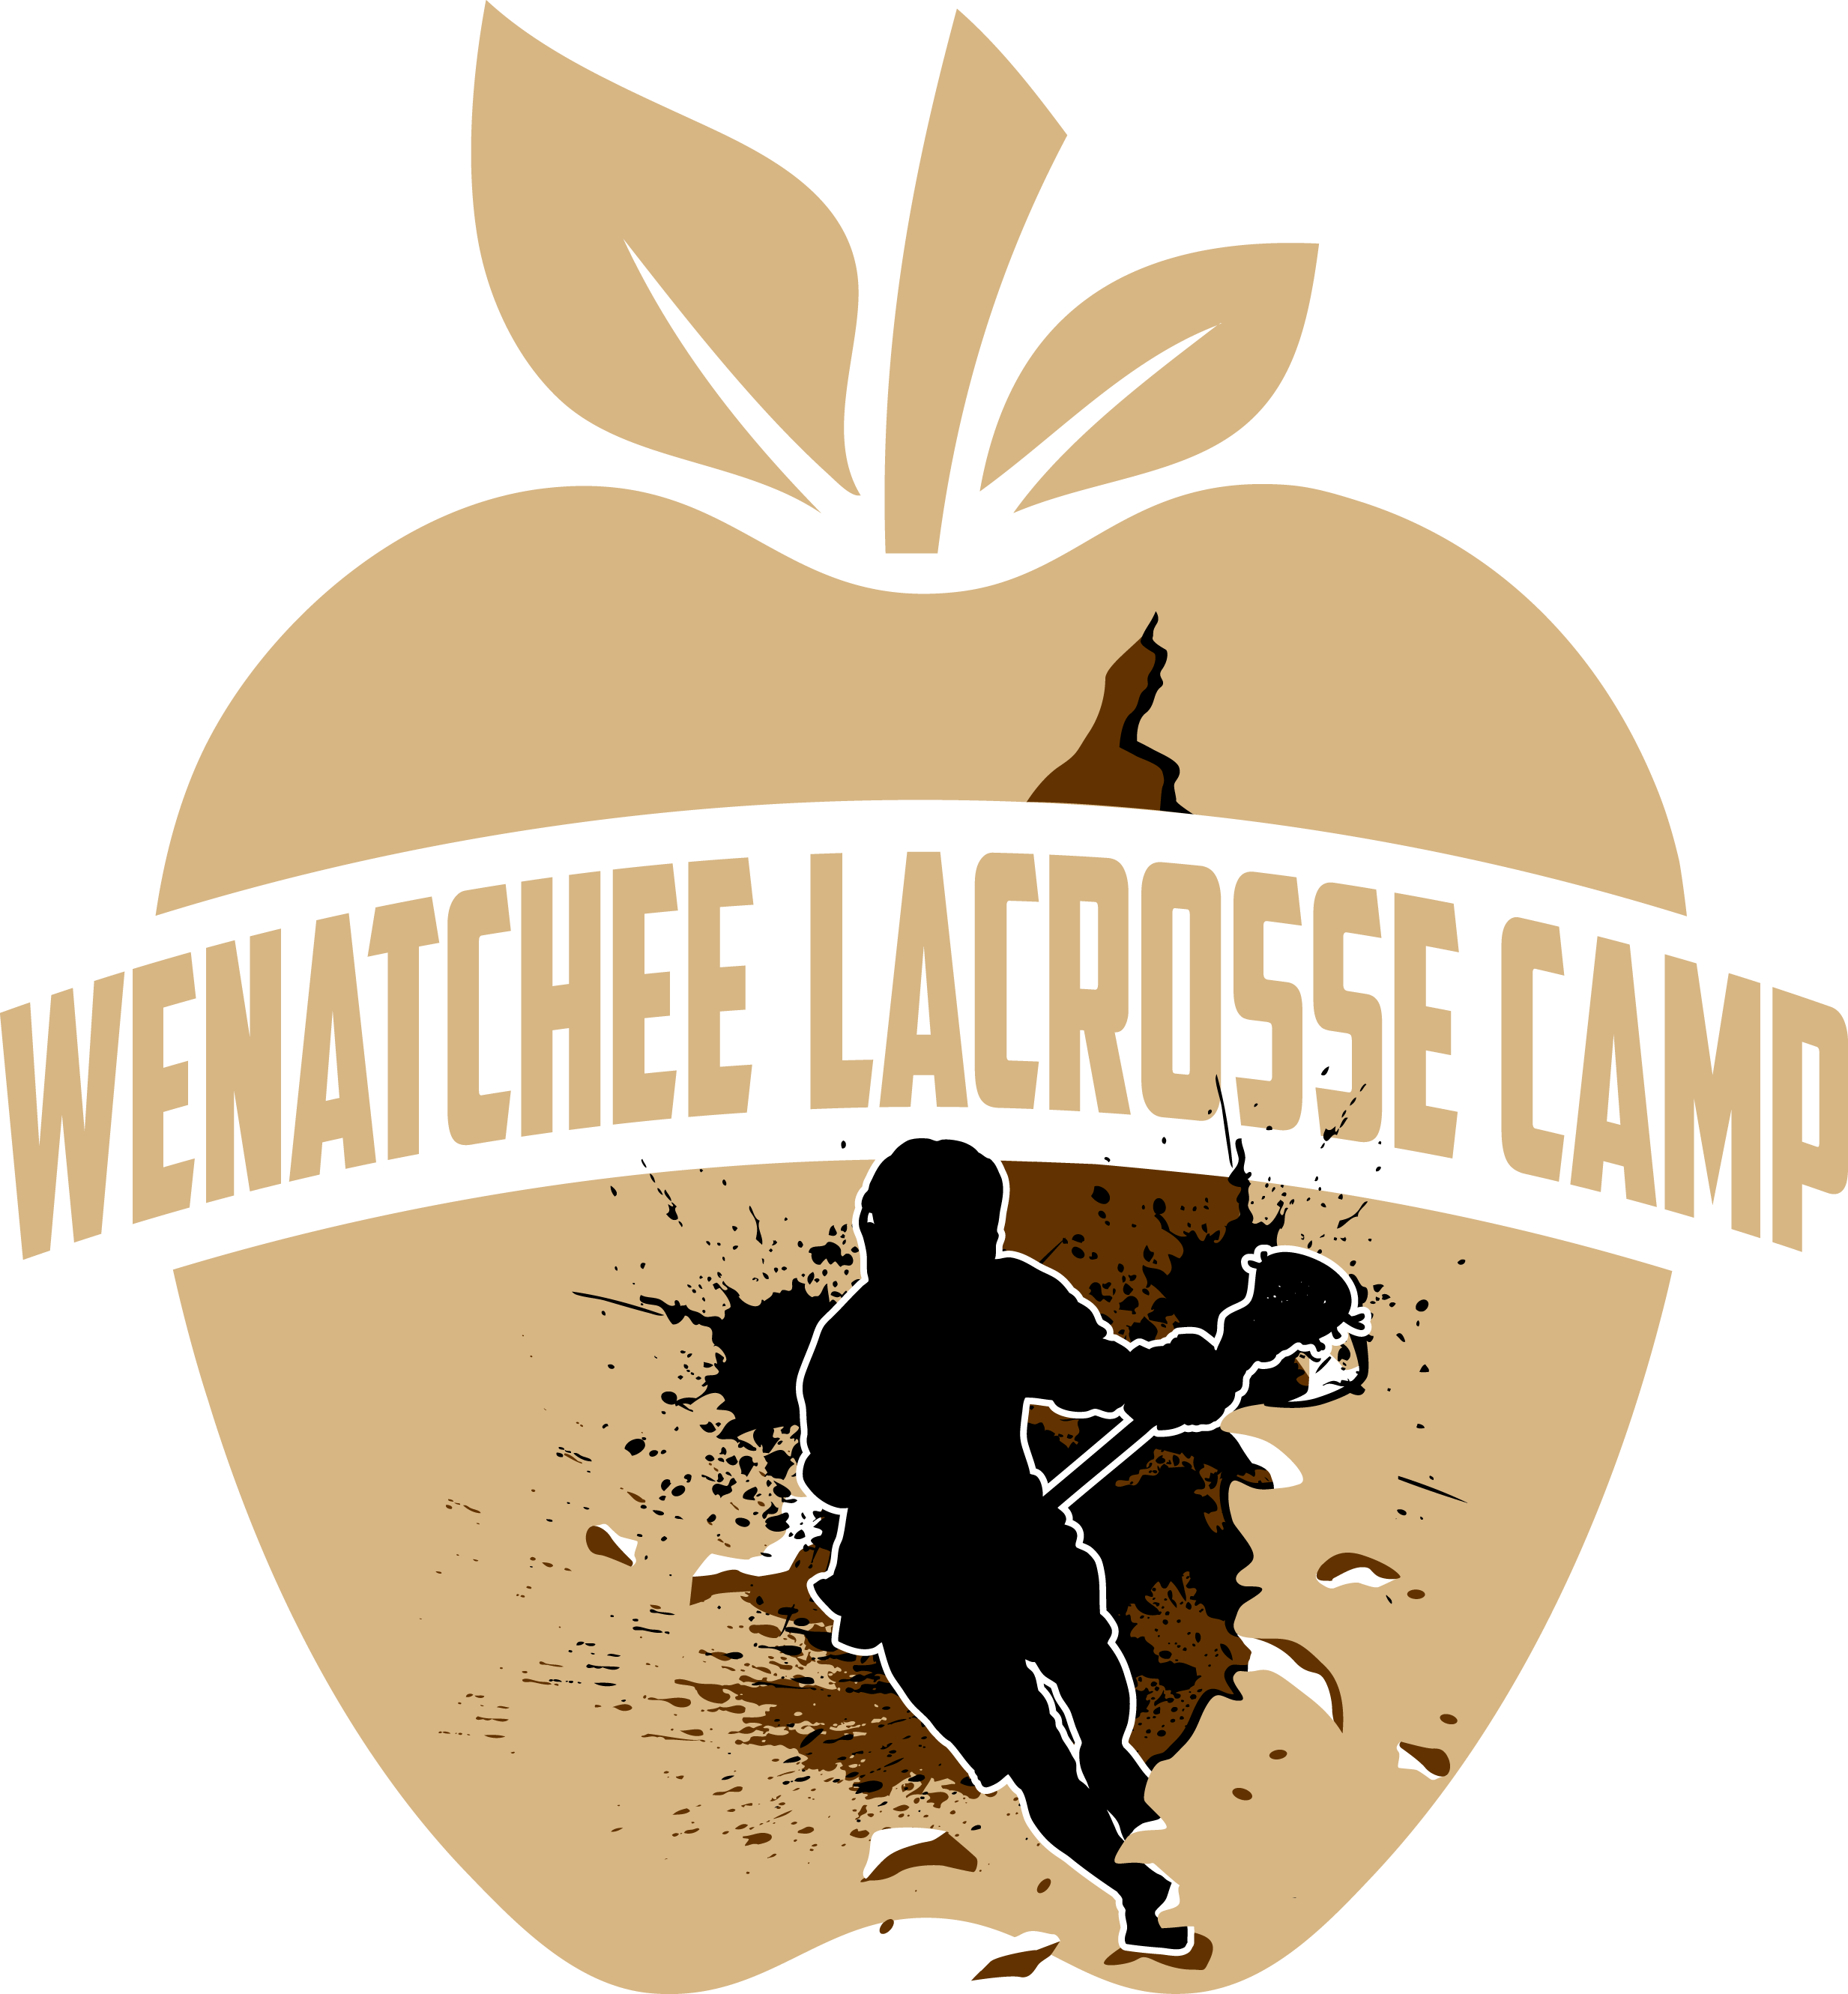 Wenatchee Lacrosse Camp